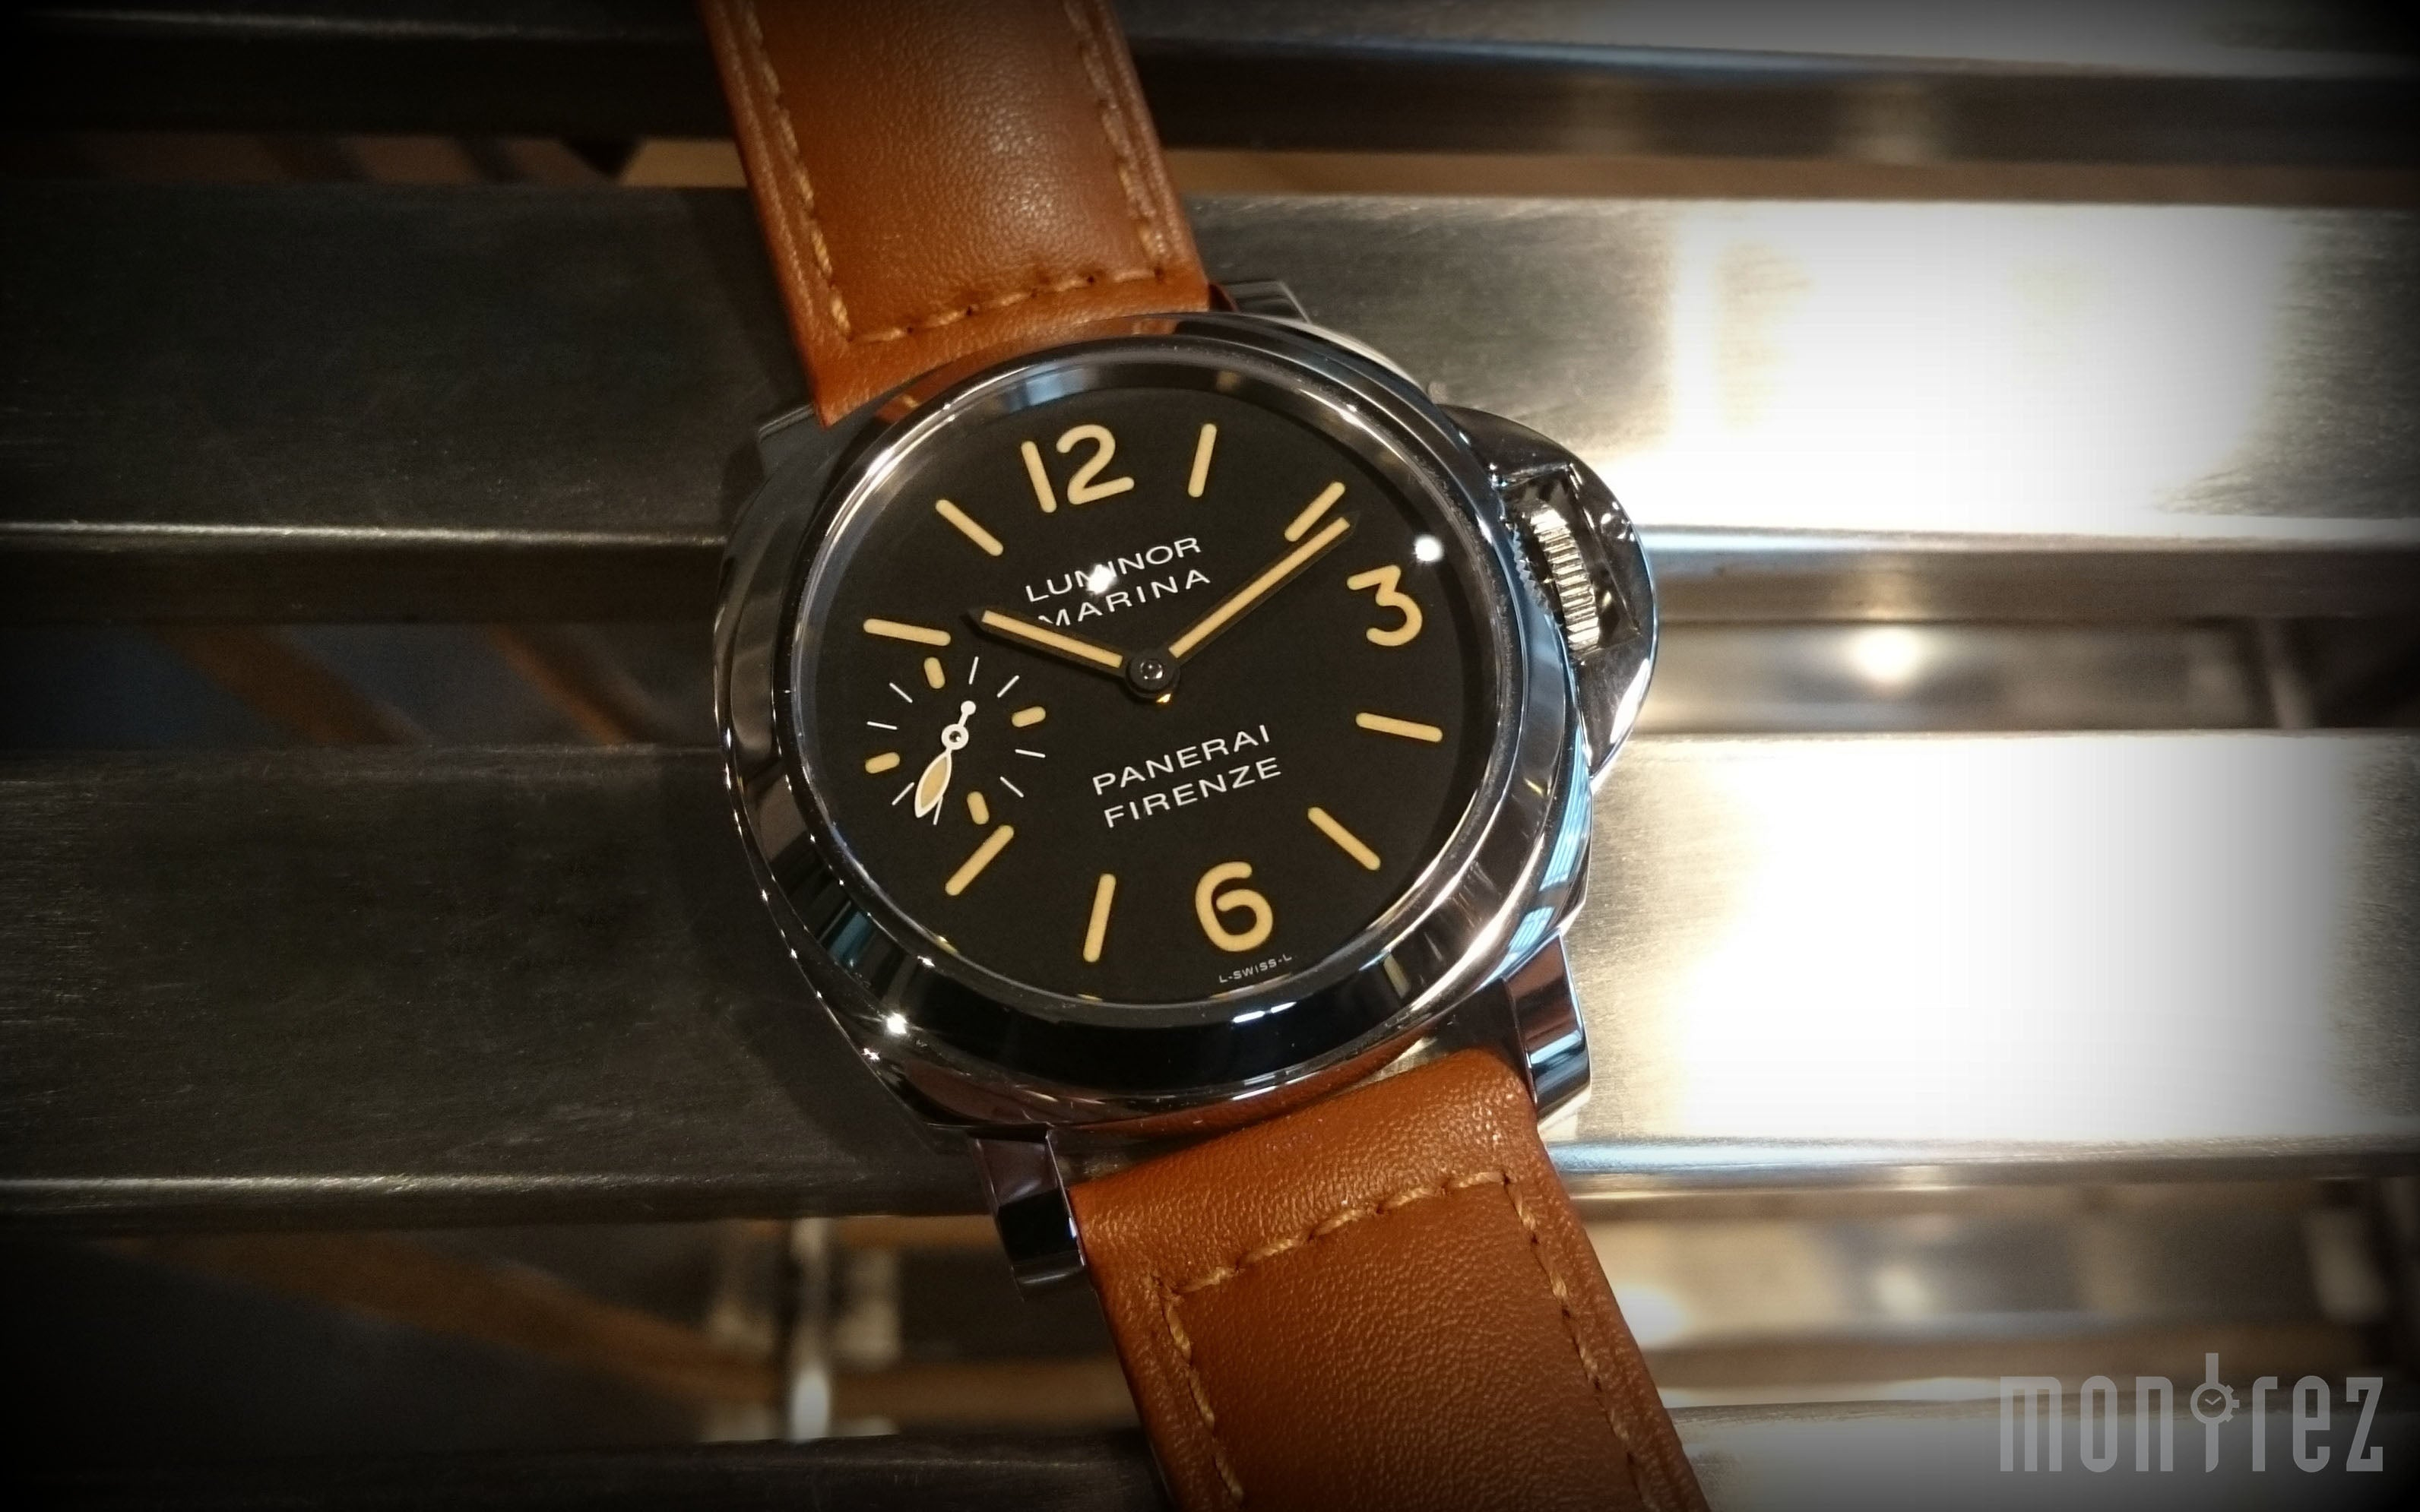 Panerai Luminor Marina 44mm PAM00001 (Firenze Boutique Edition)